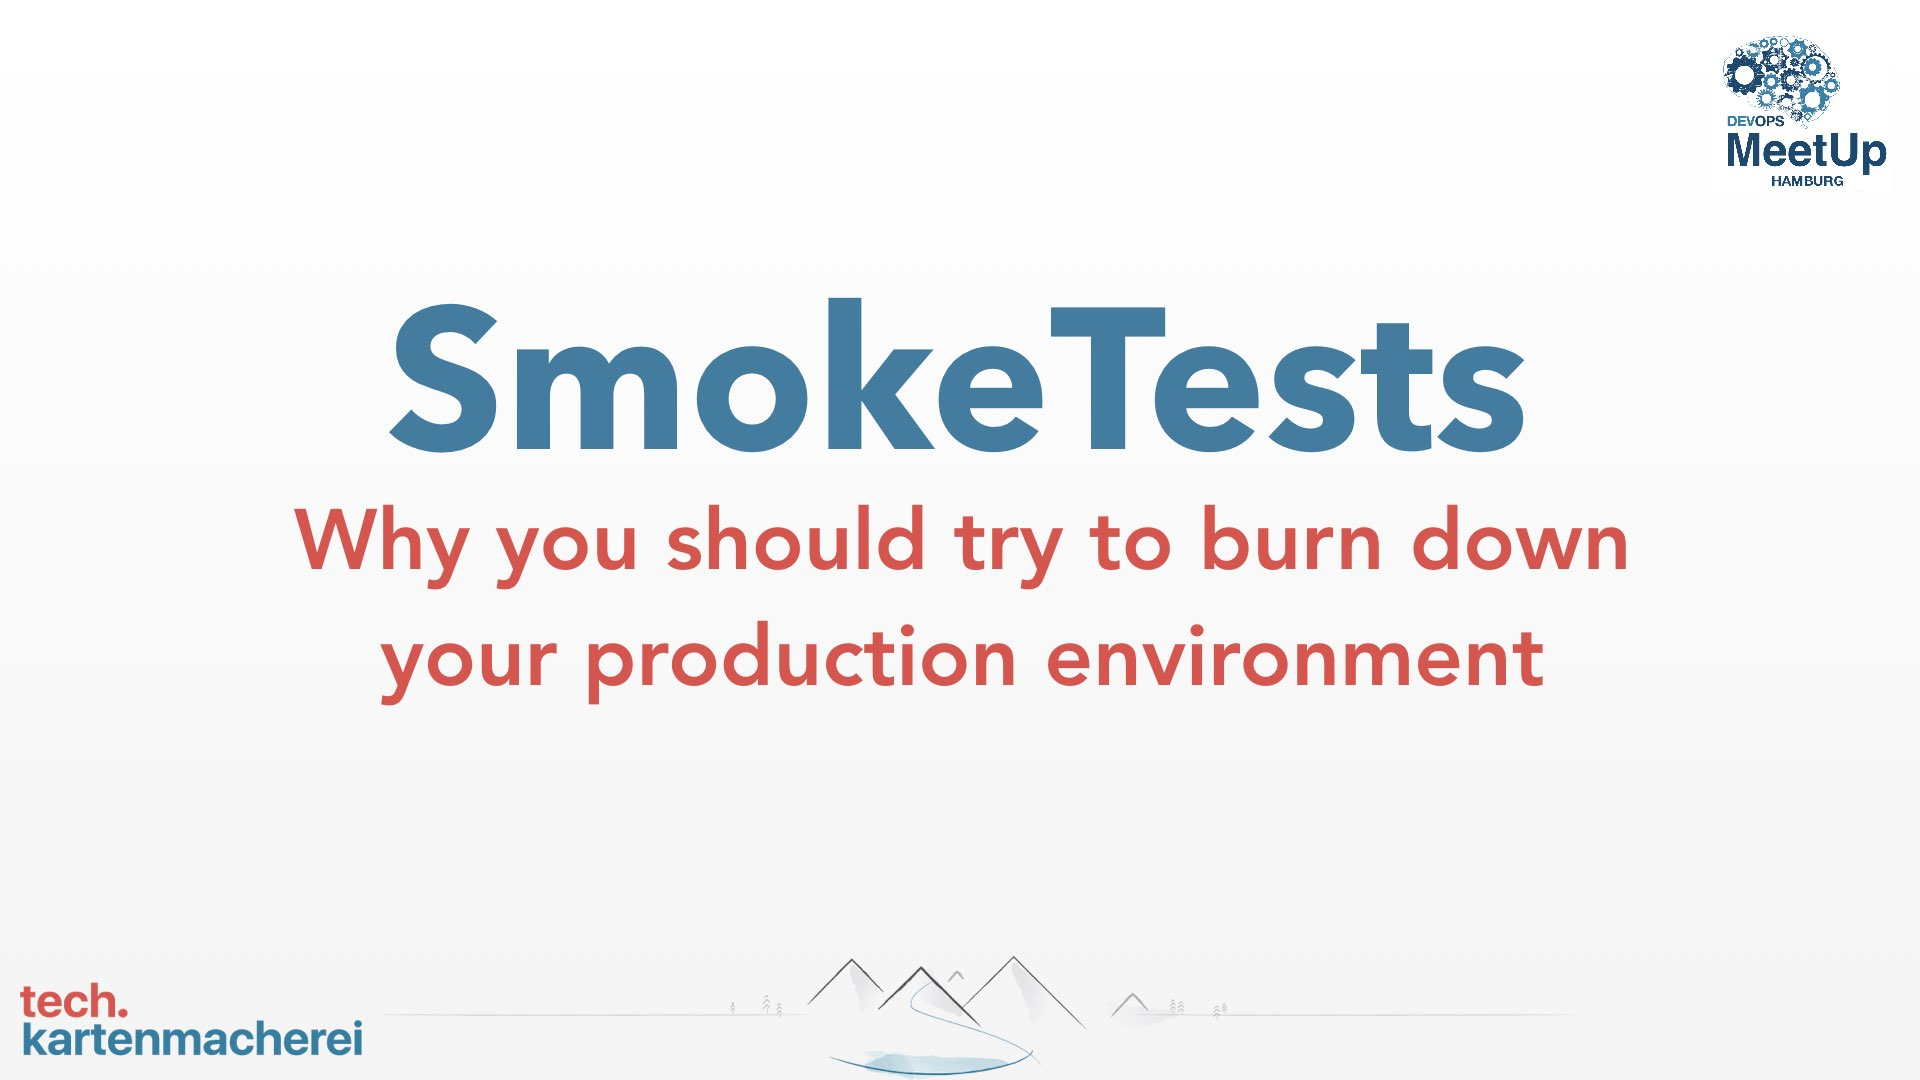 This is the first talk about SmokeTesting and why you should try to burn down your server